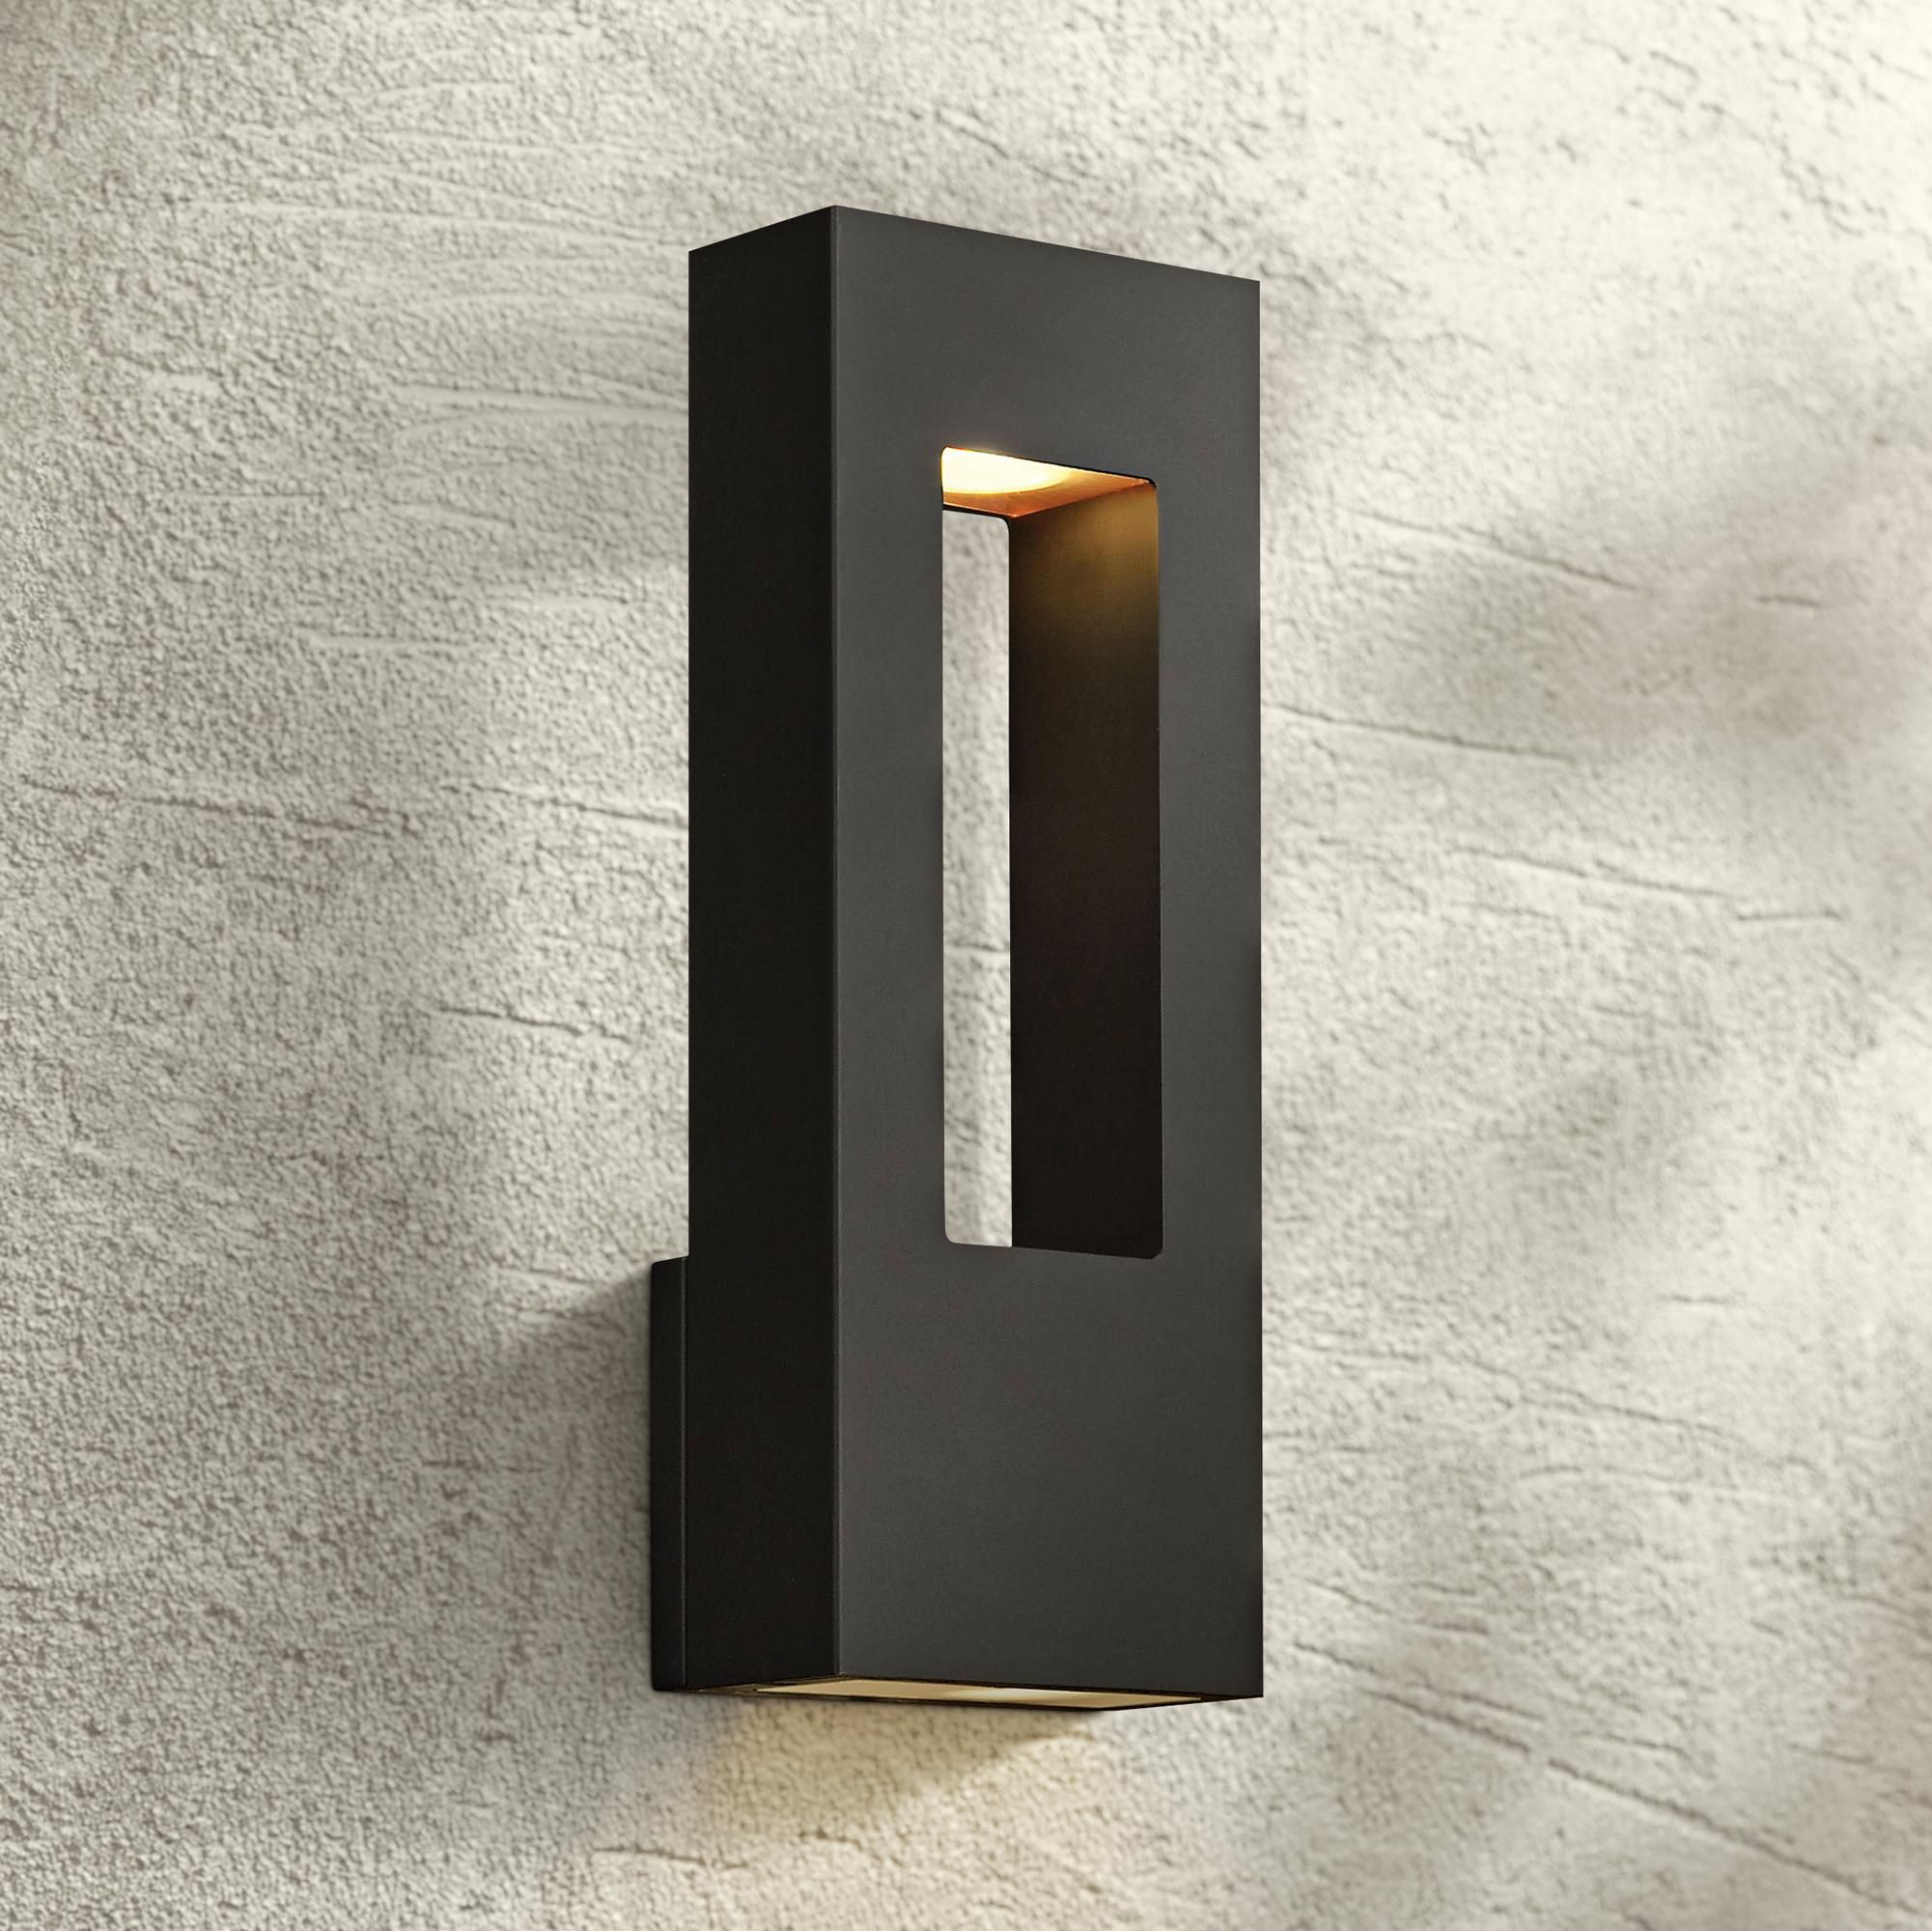 Outdoor Lighting Atlantis 16 H Black And Frosted Glass Led Outdoor Wall Light Wall Lights Outdoor Wall Lighting Led Outdoor Wall Lights